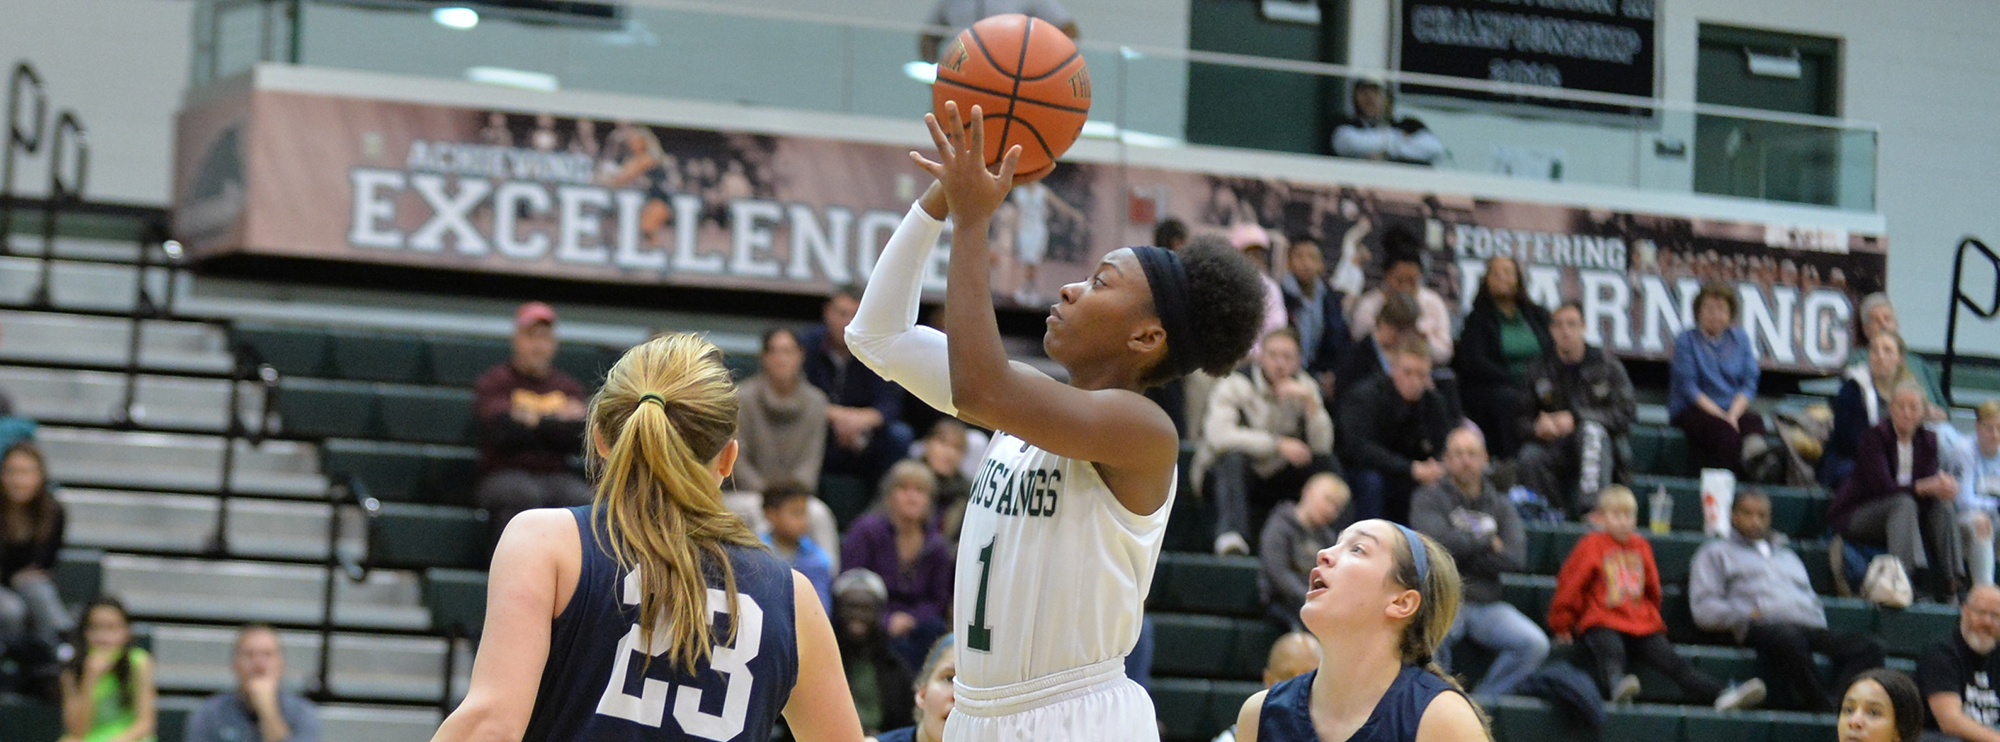 Women's Basketball Returns to Conference Play, Hosts Alvernia Saturday